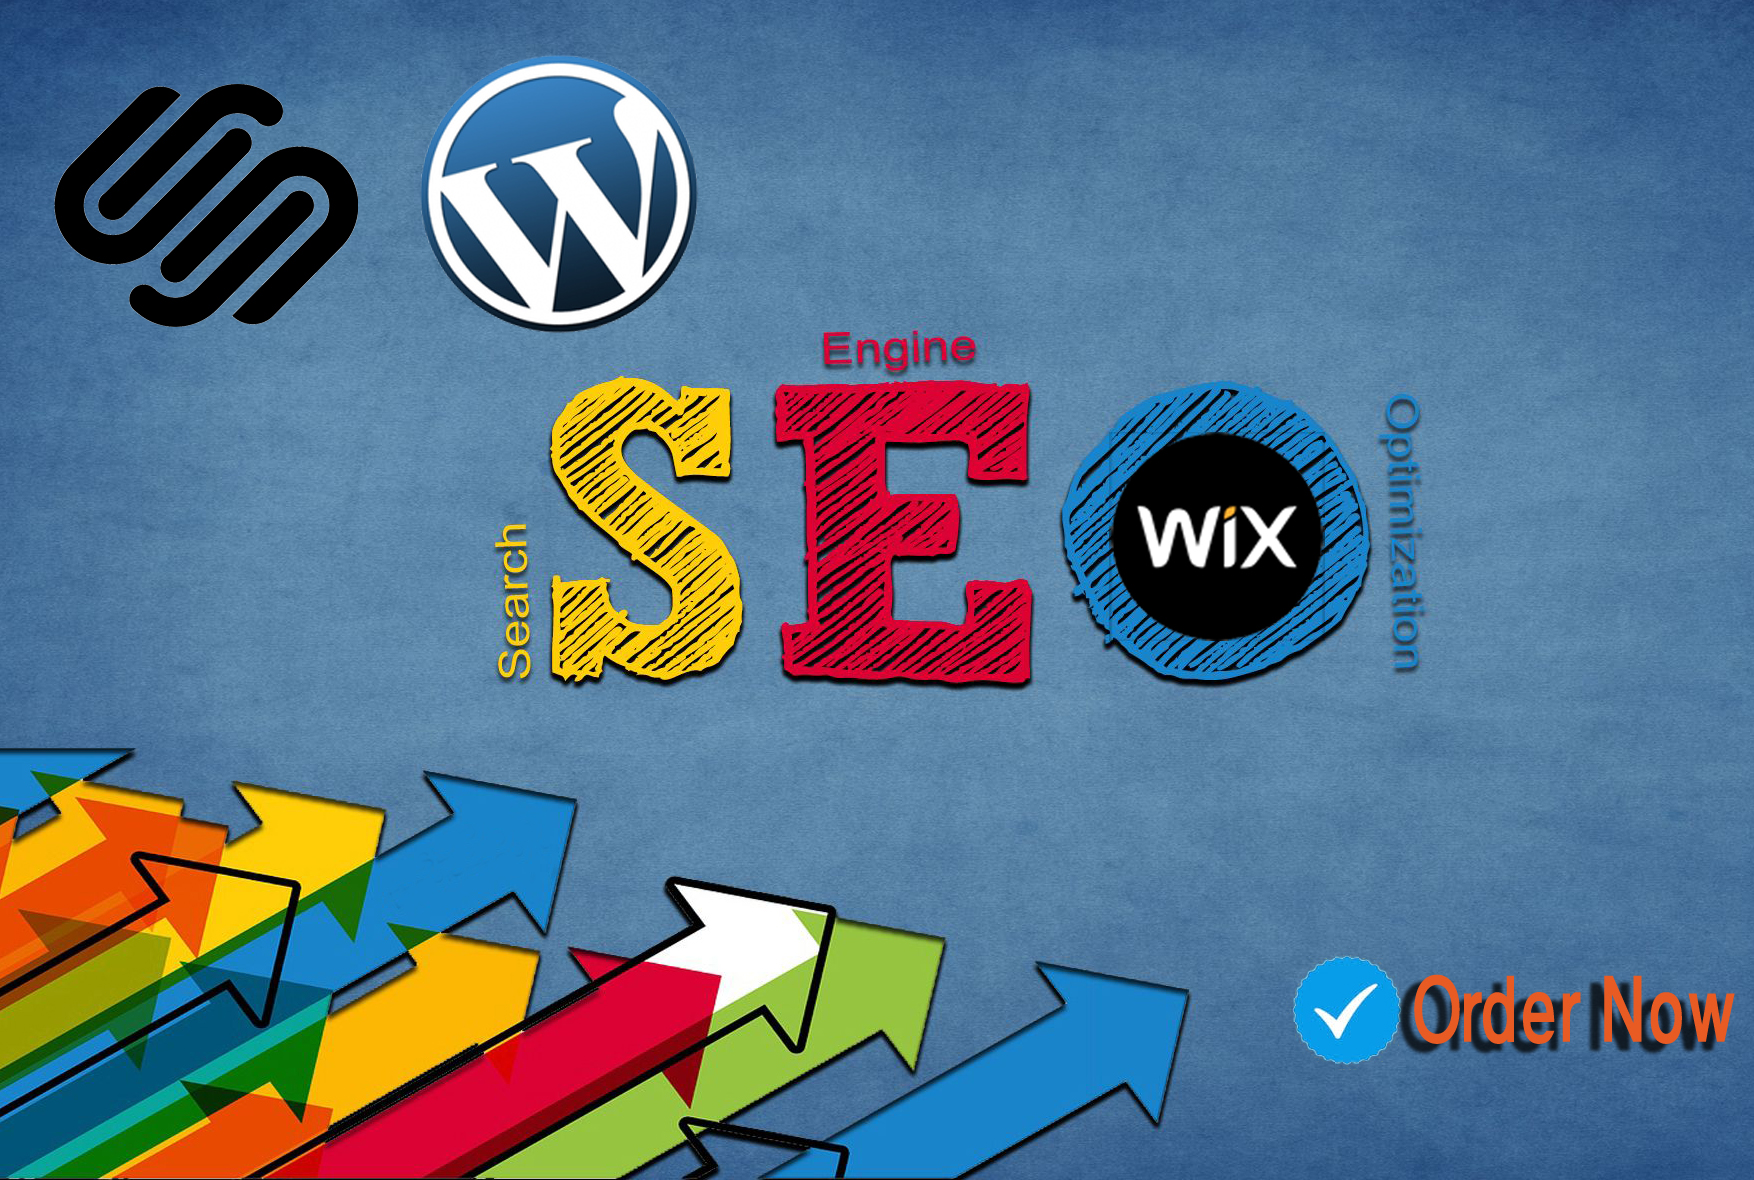 I will give SEO service for wix,  wordpress or squarespace websites